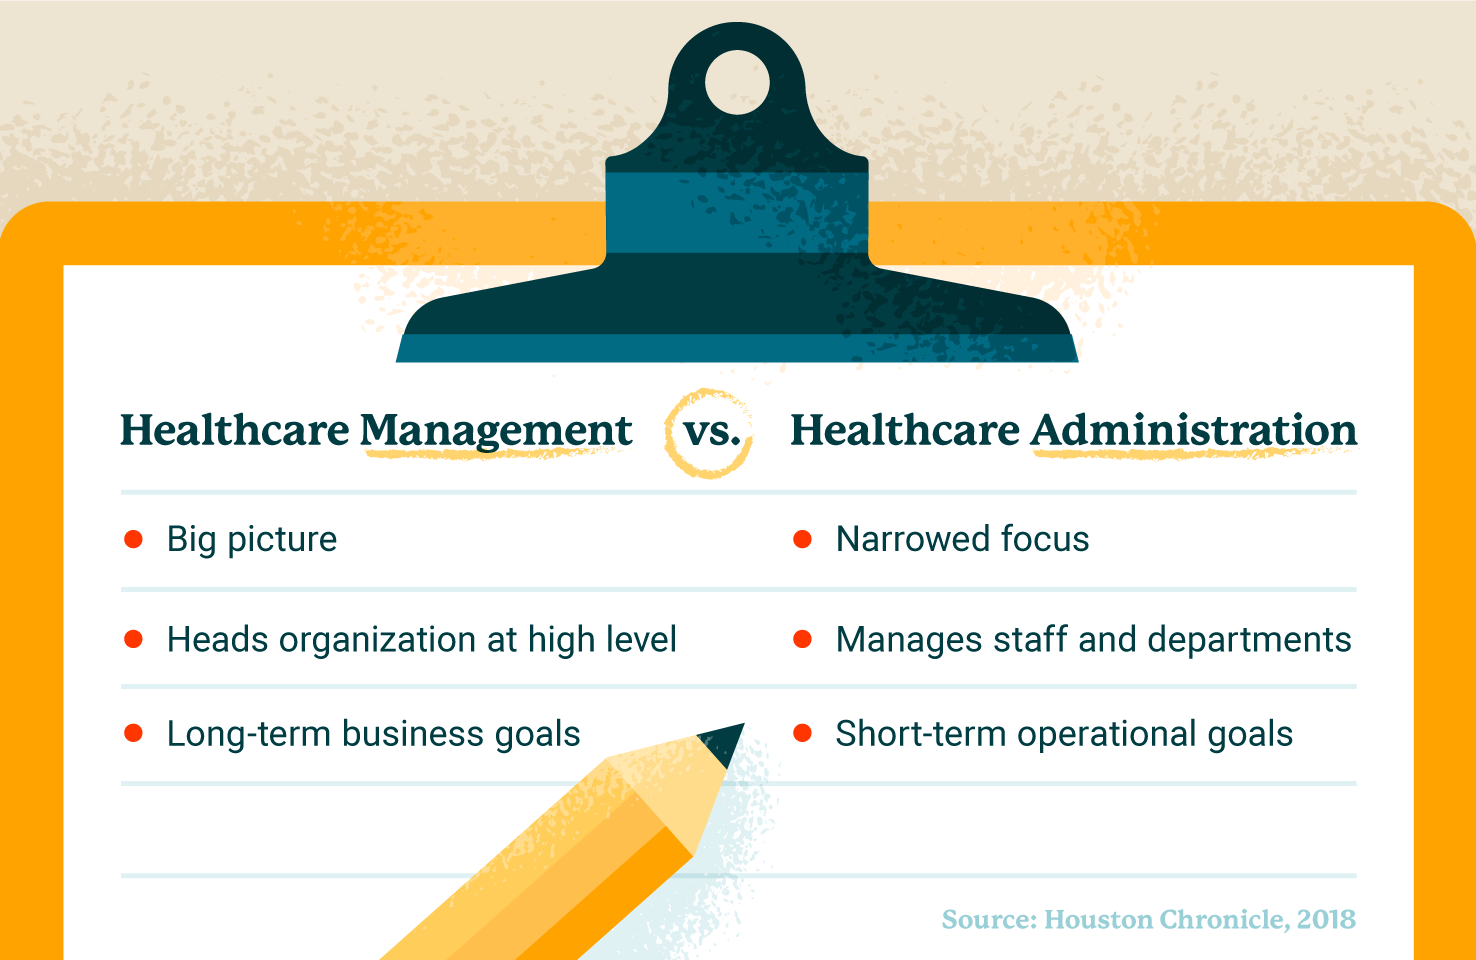 Graphic of differences between healthcare management and healthcare administration